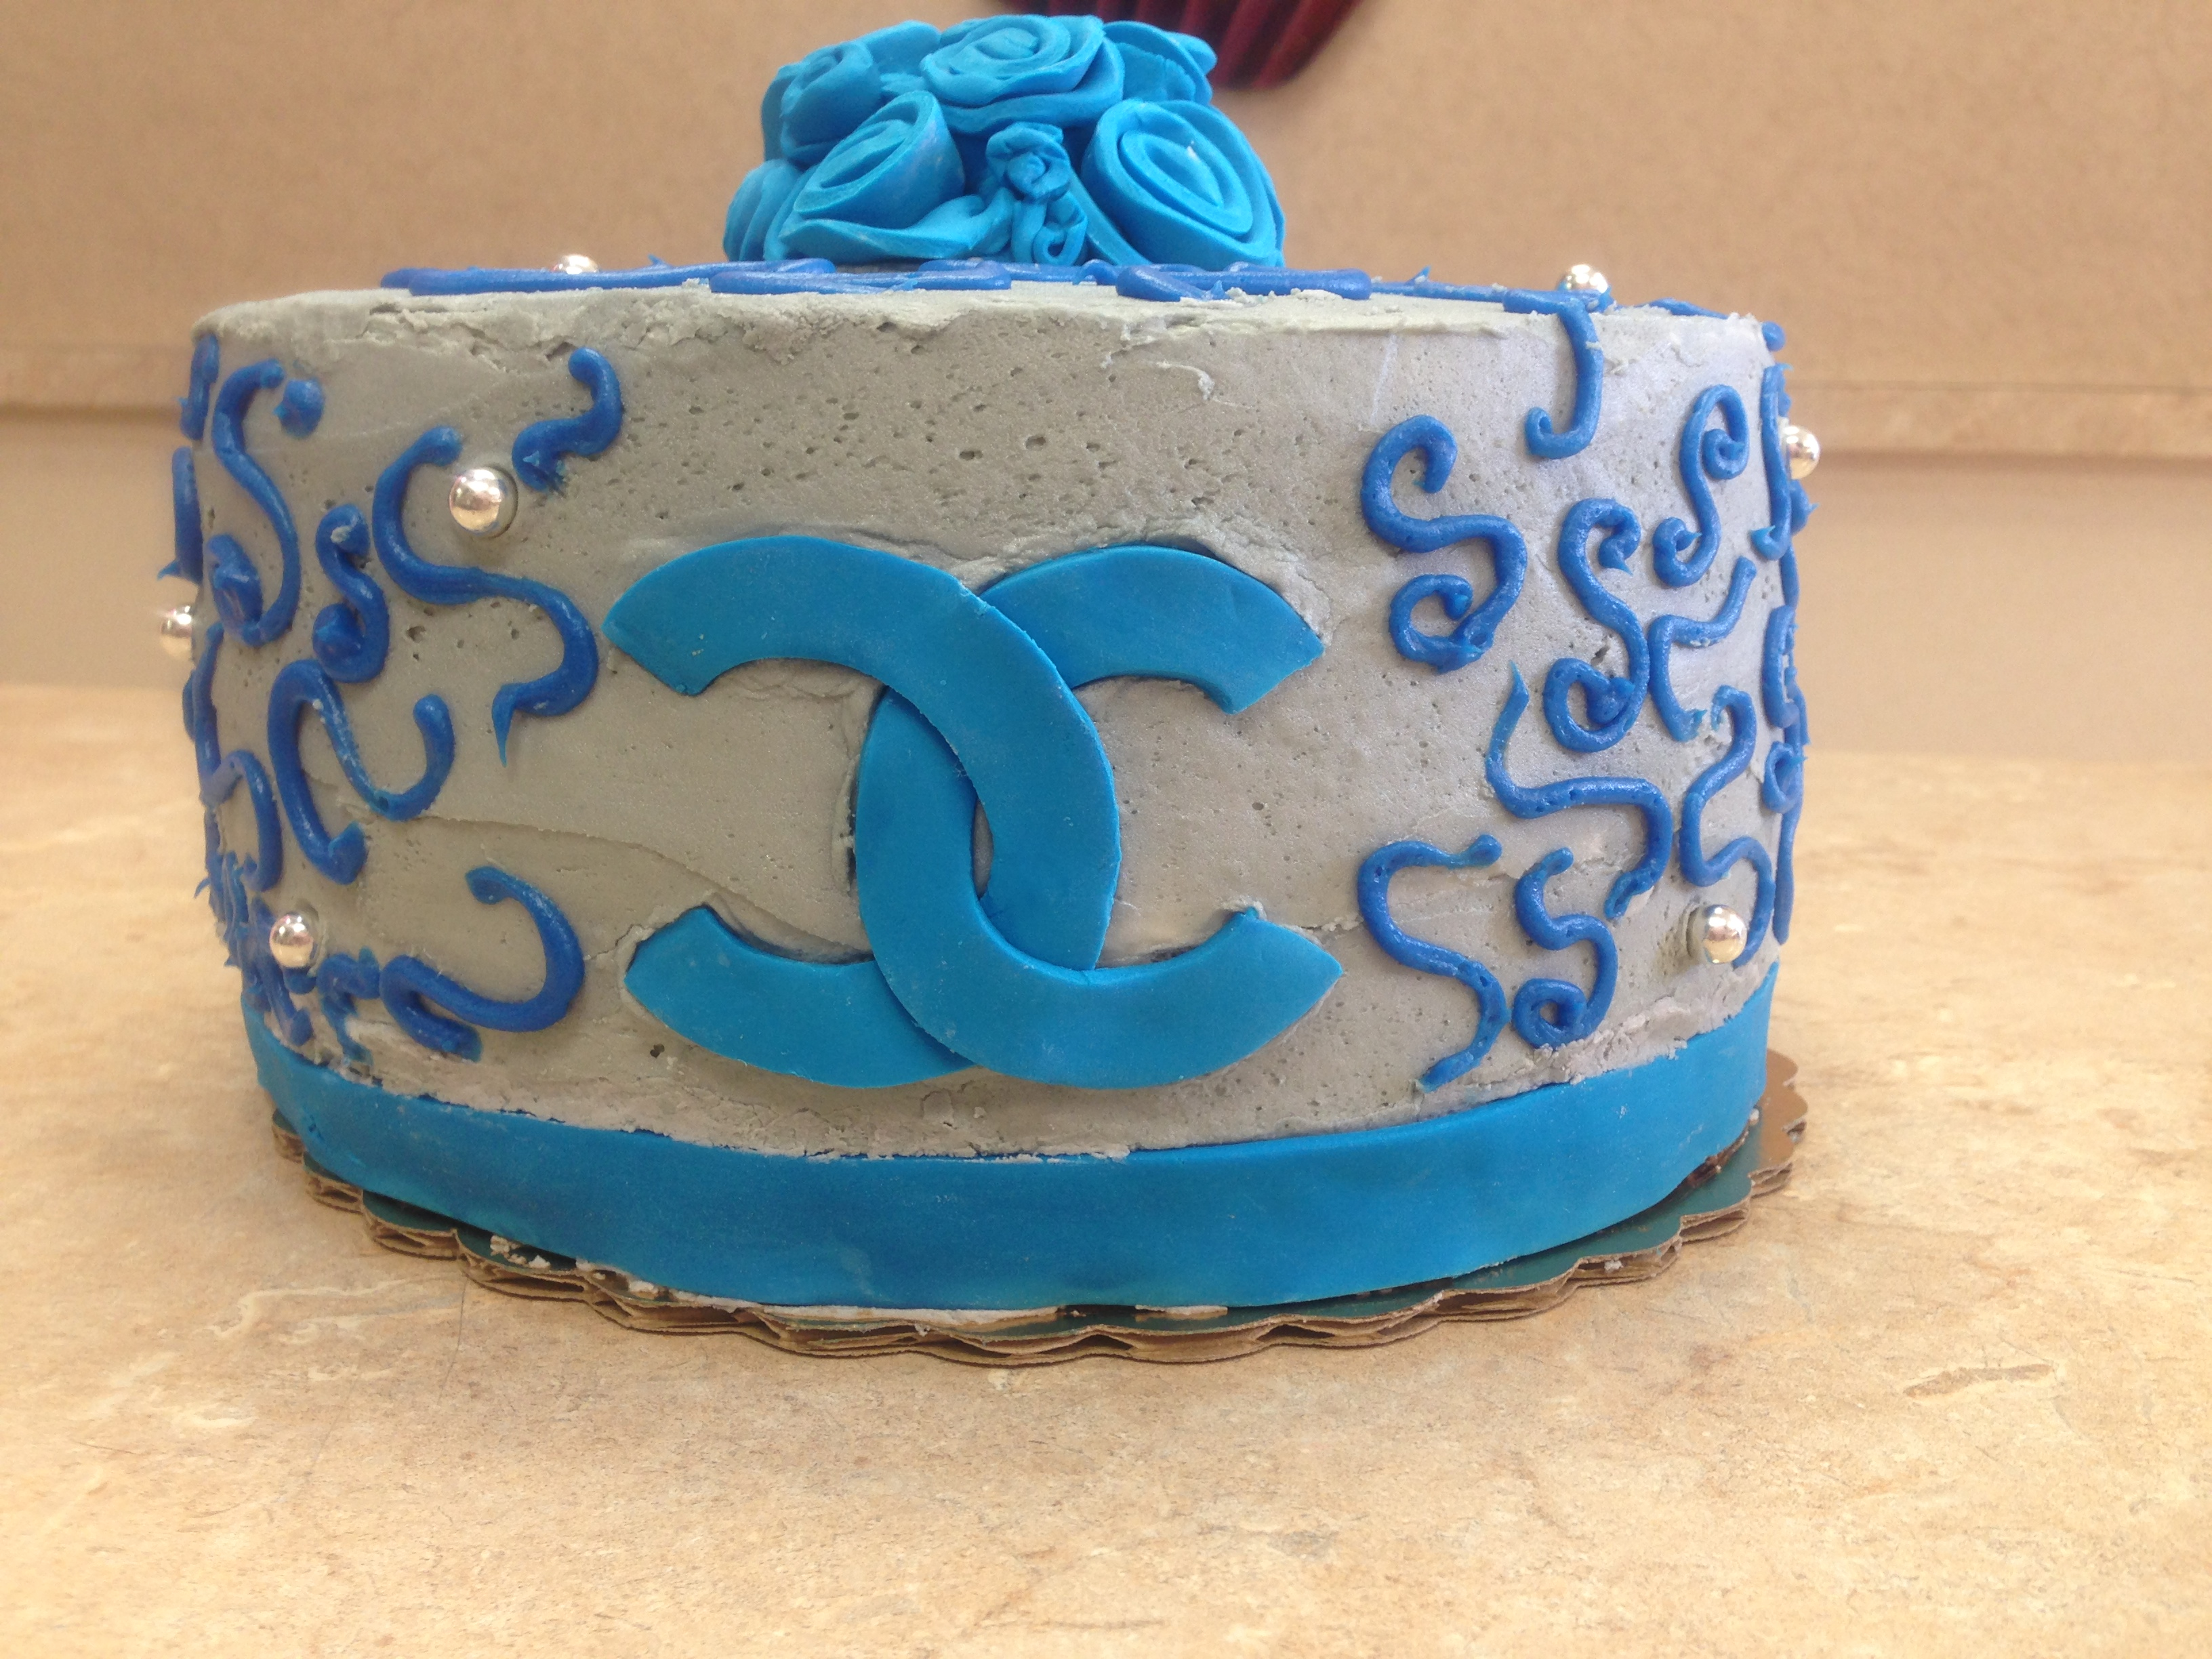 Channel Design Cake